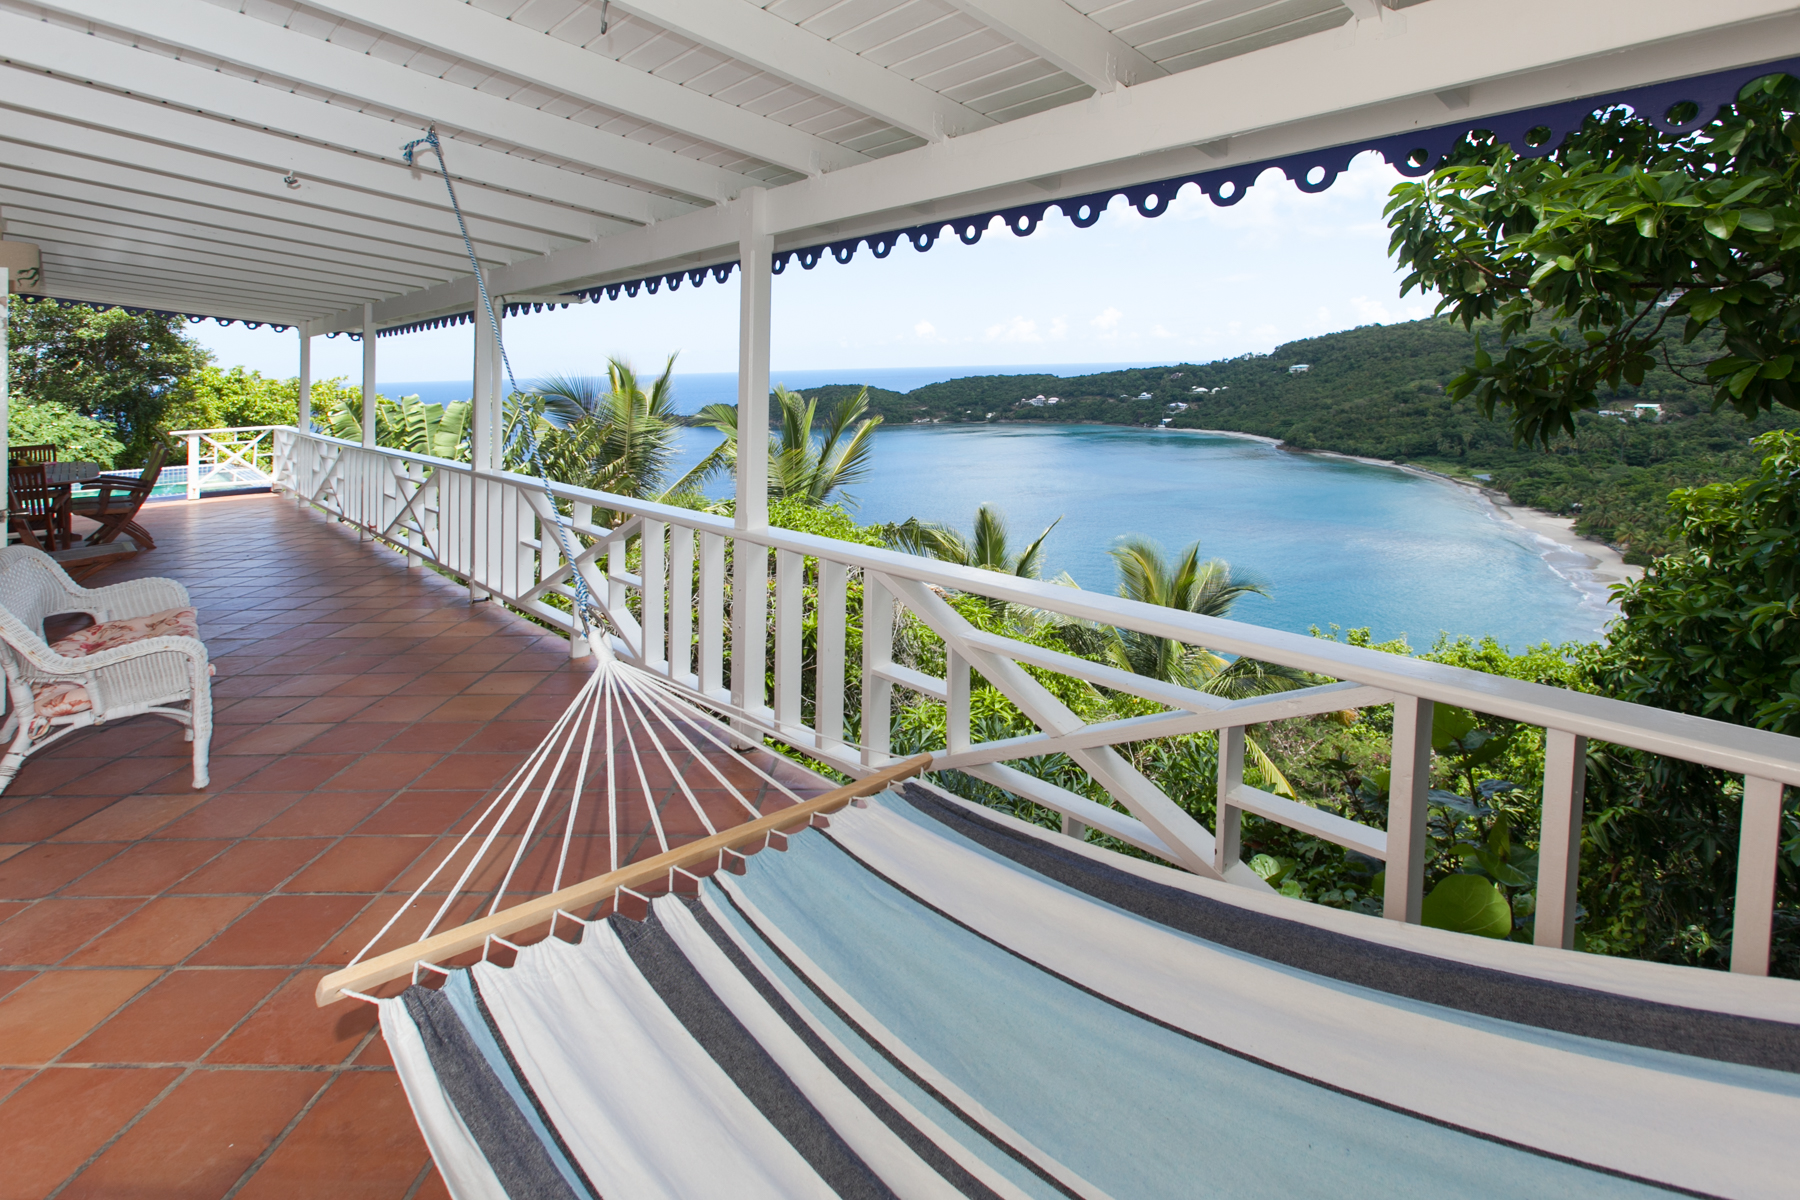 Additional photo for property listing at Paradise Found Other British Virgin Islands, Ingiliz Virgin Adalarindaki Diğer Bölgeler Ingiliz Virgin Adalari